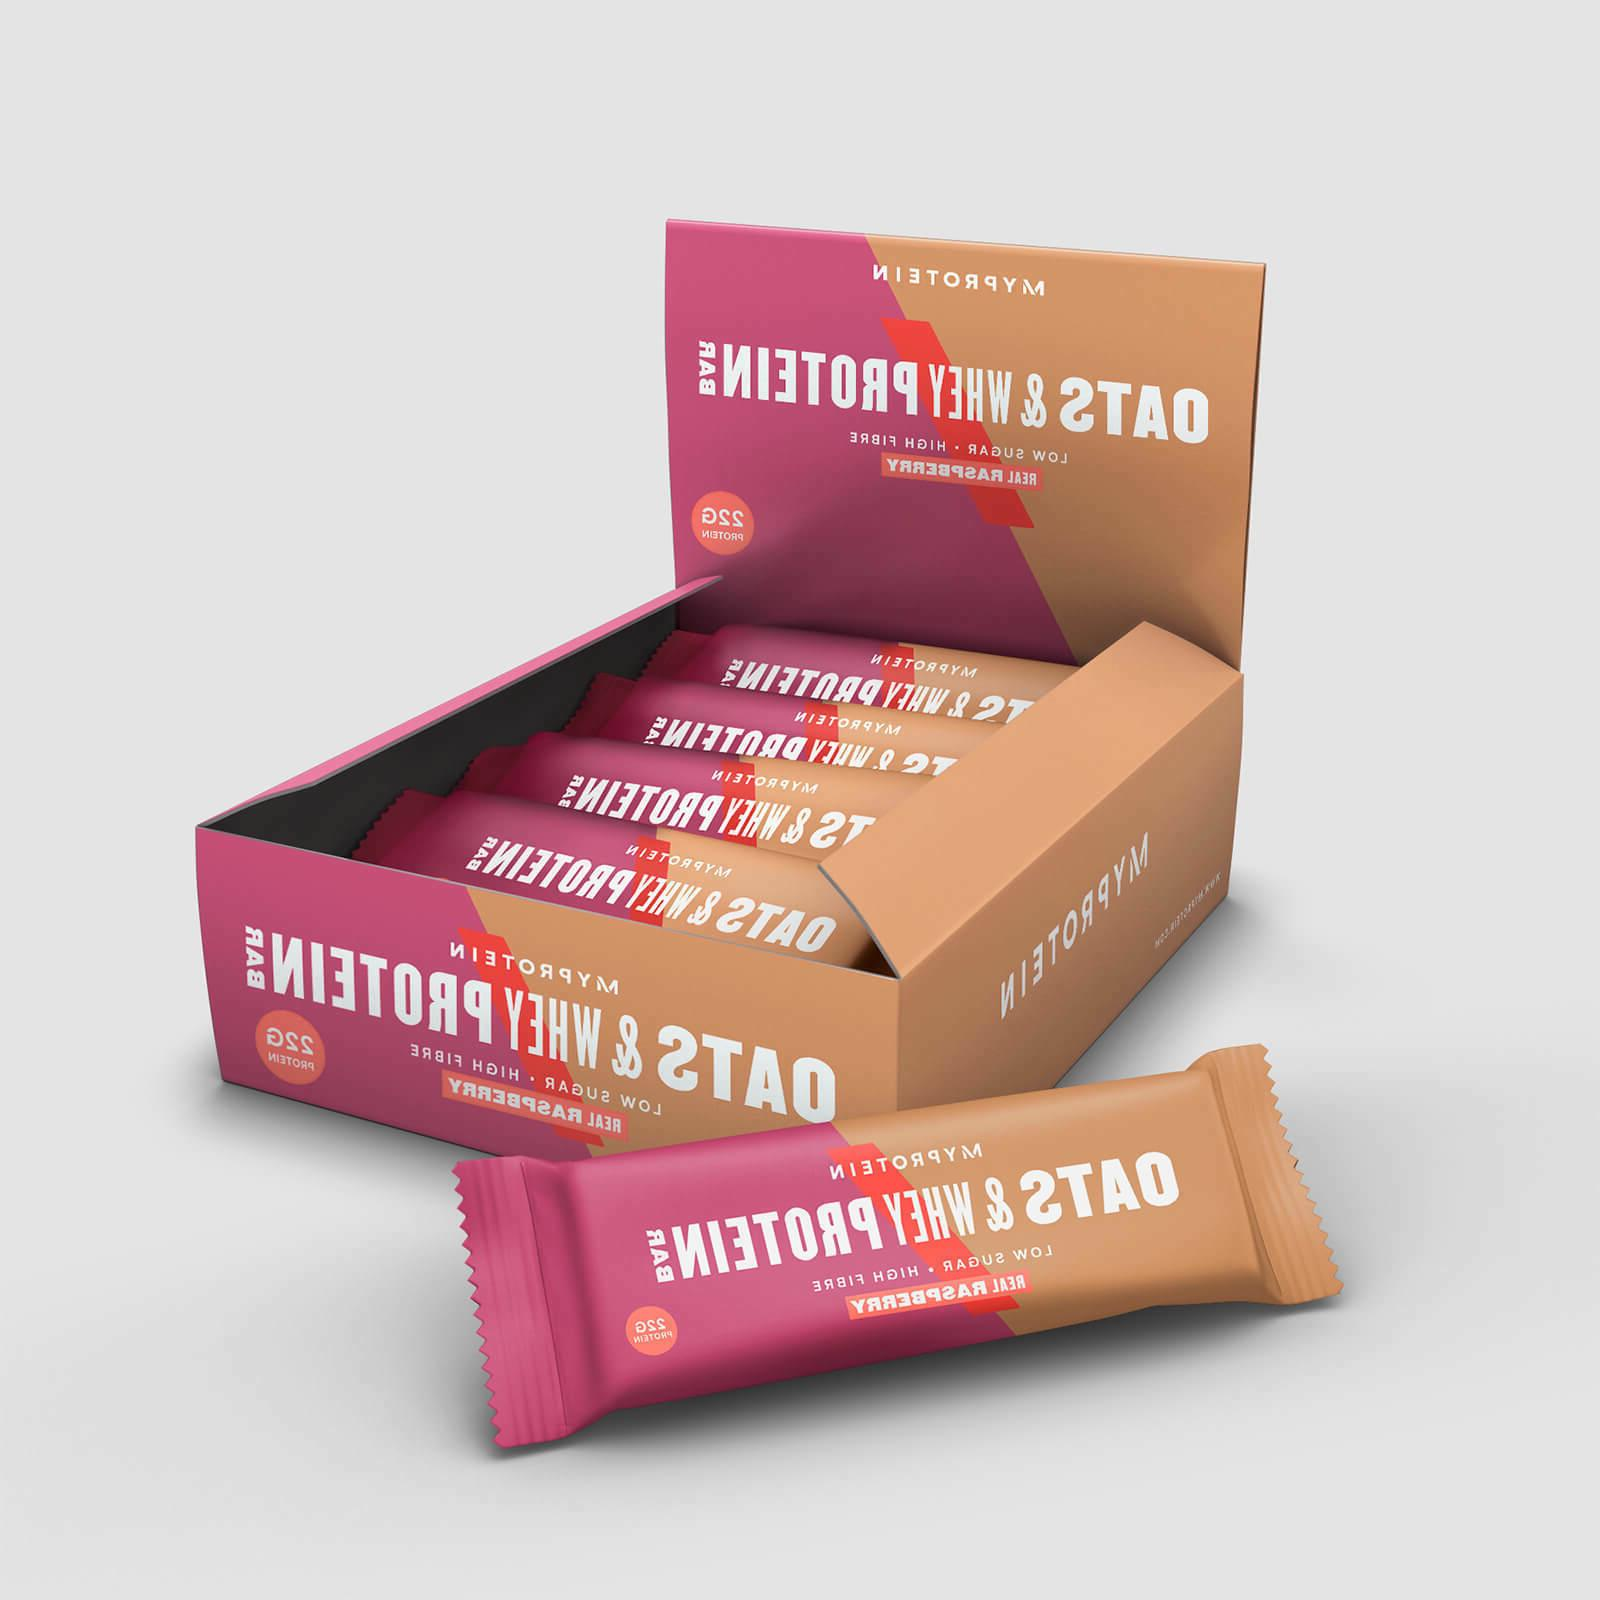 protein bars 22 g protein and 38g